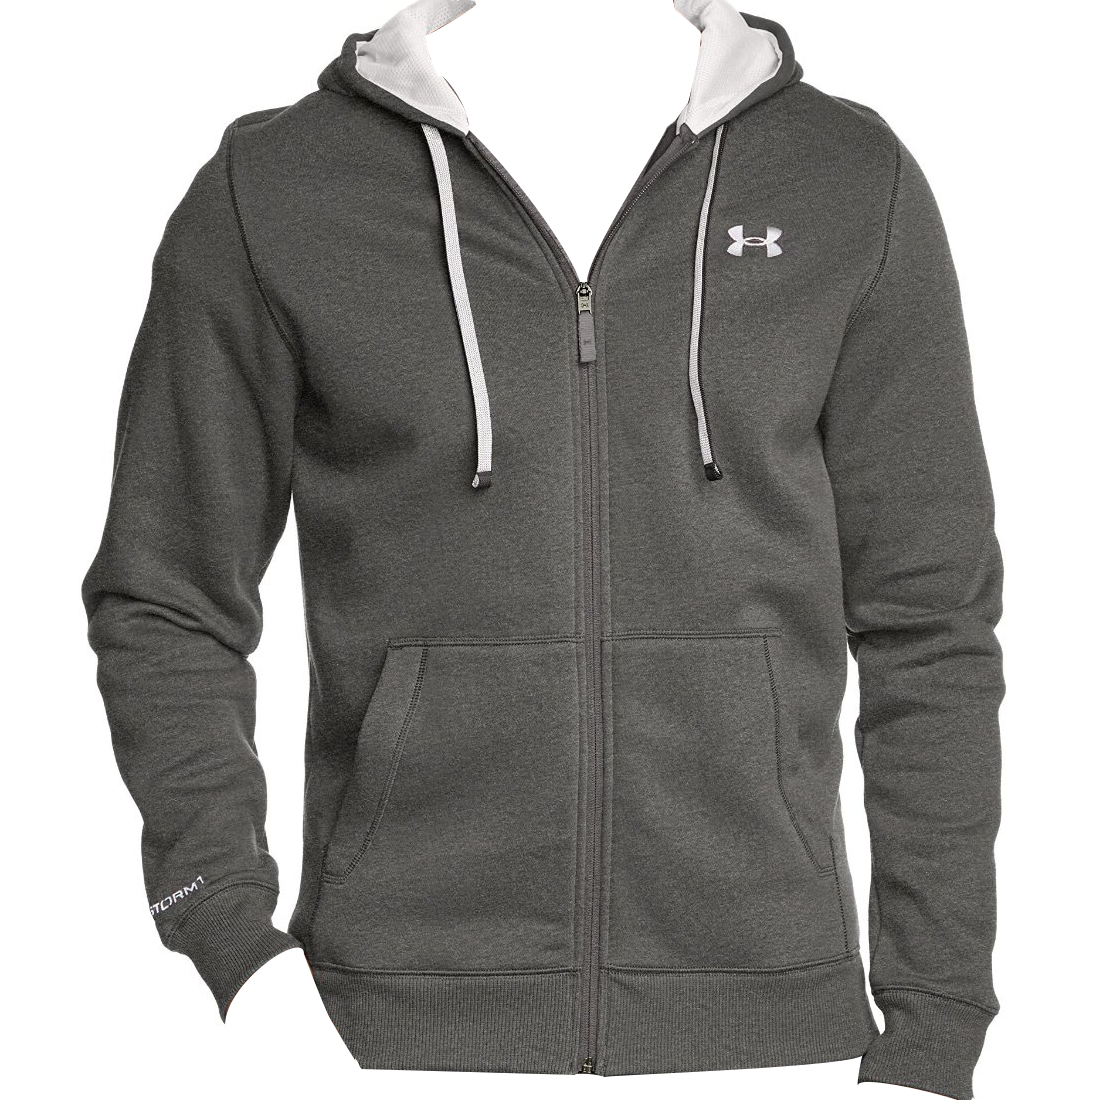 45ae006ce Under Armour Storm Full Zip Hoodie Grey - O'Dwyers Golf Store